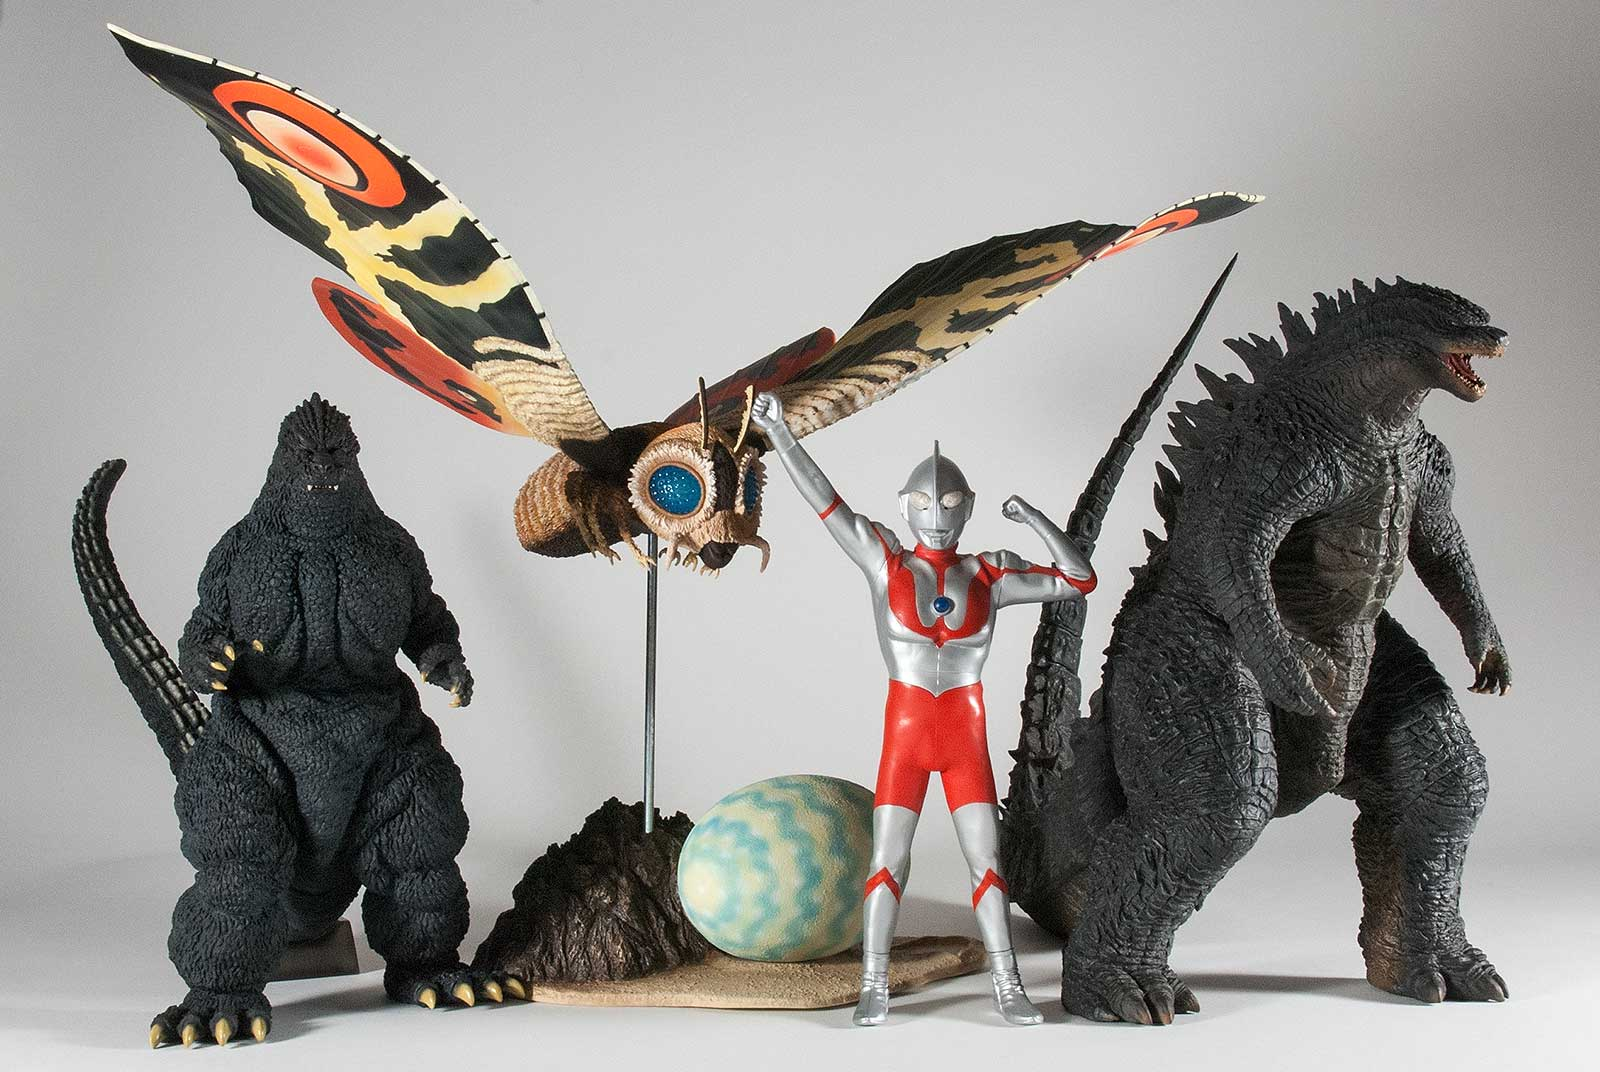 Review: Large Monster Series Ultraman C-Type Appearance